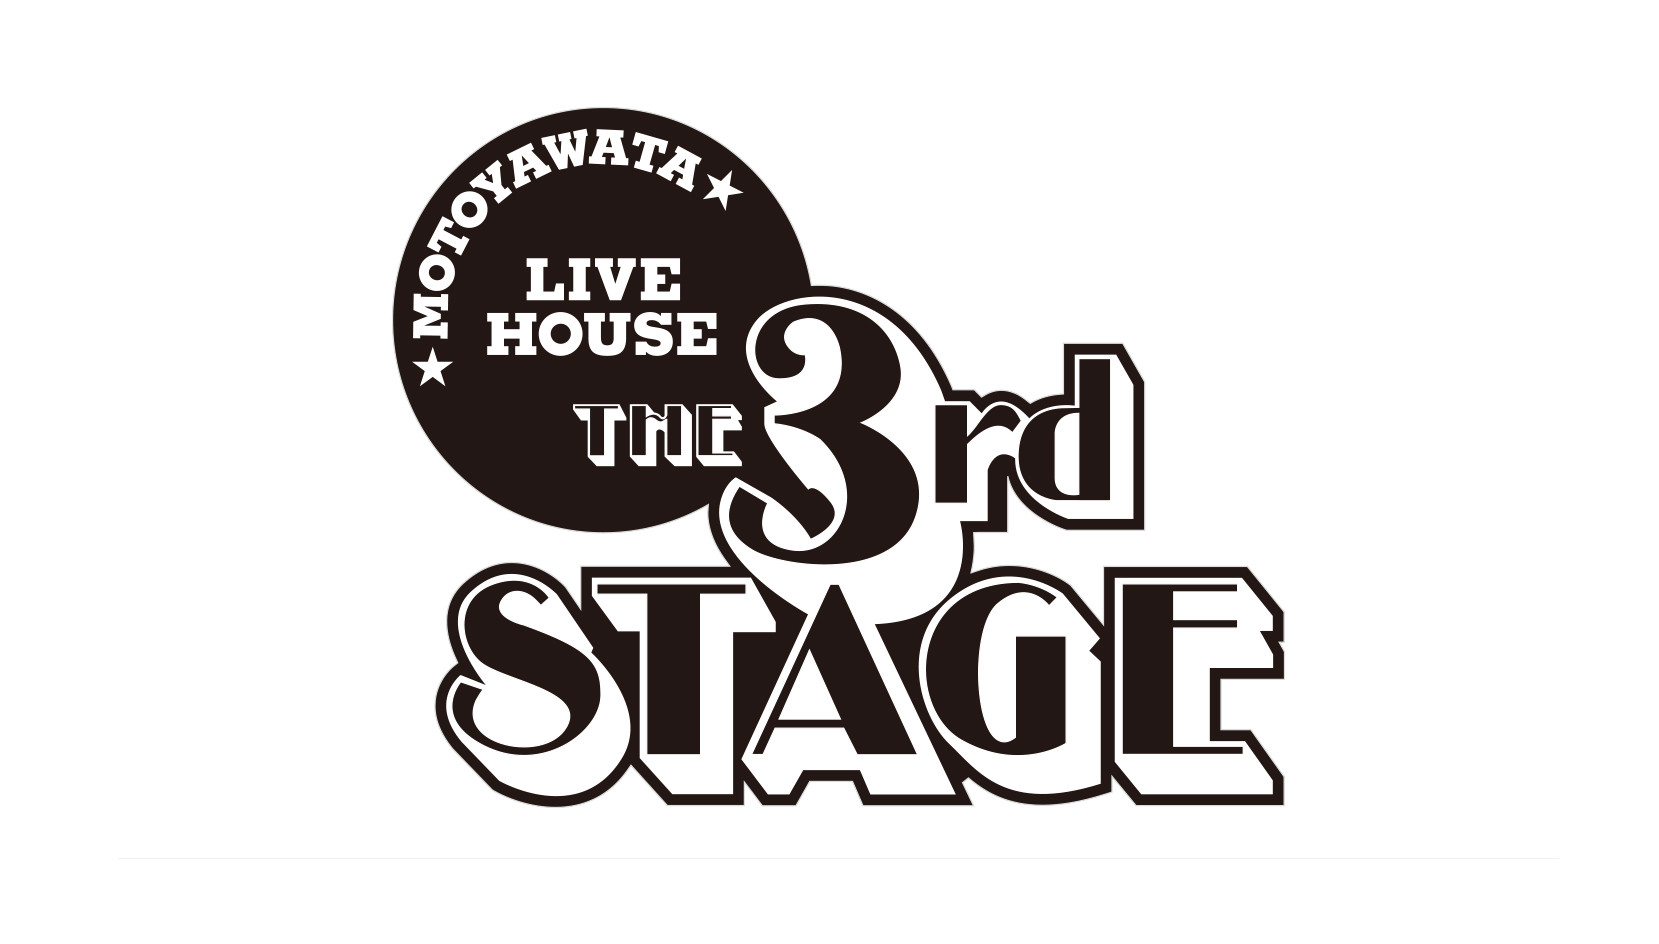 the3rdstage